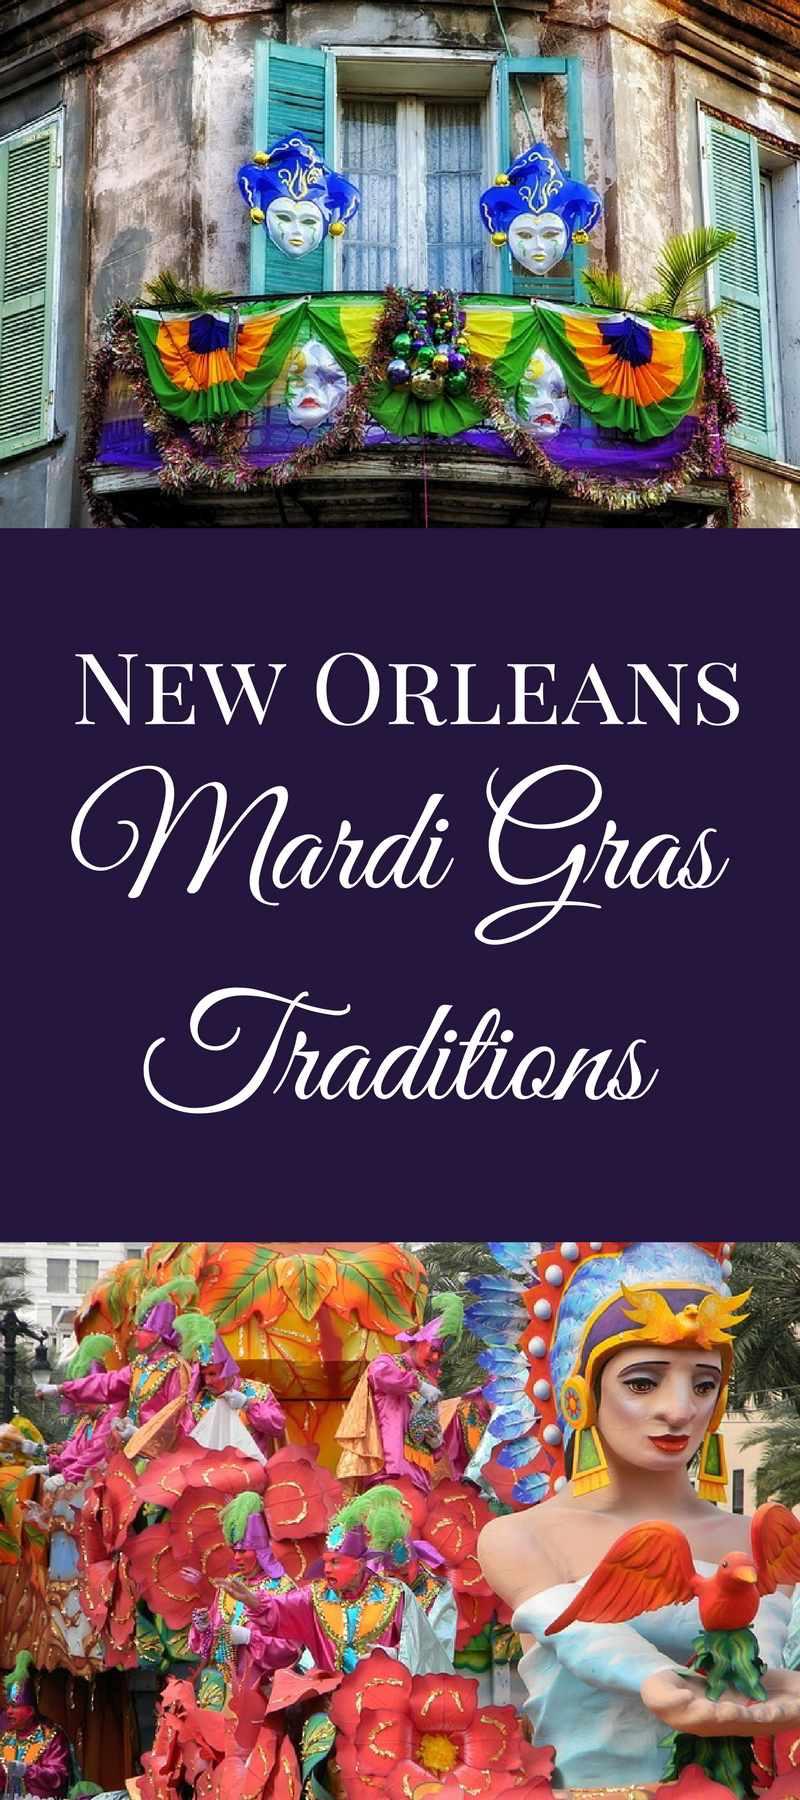 As you mark the days until Fat Tuesday, learn about some of the history of most famous New Orleans Mardi Gras traditions.